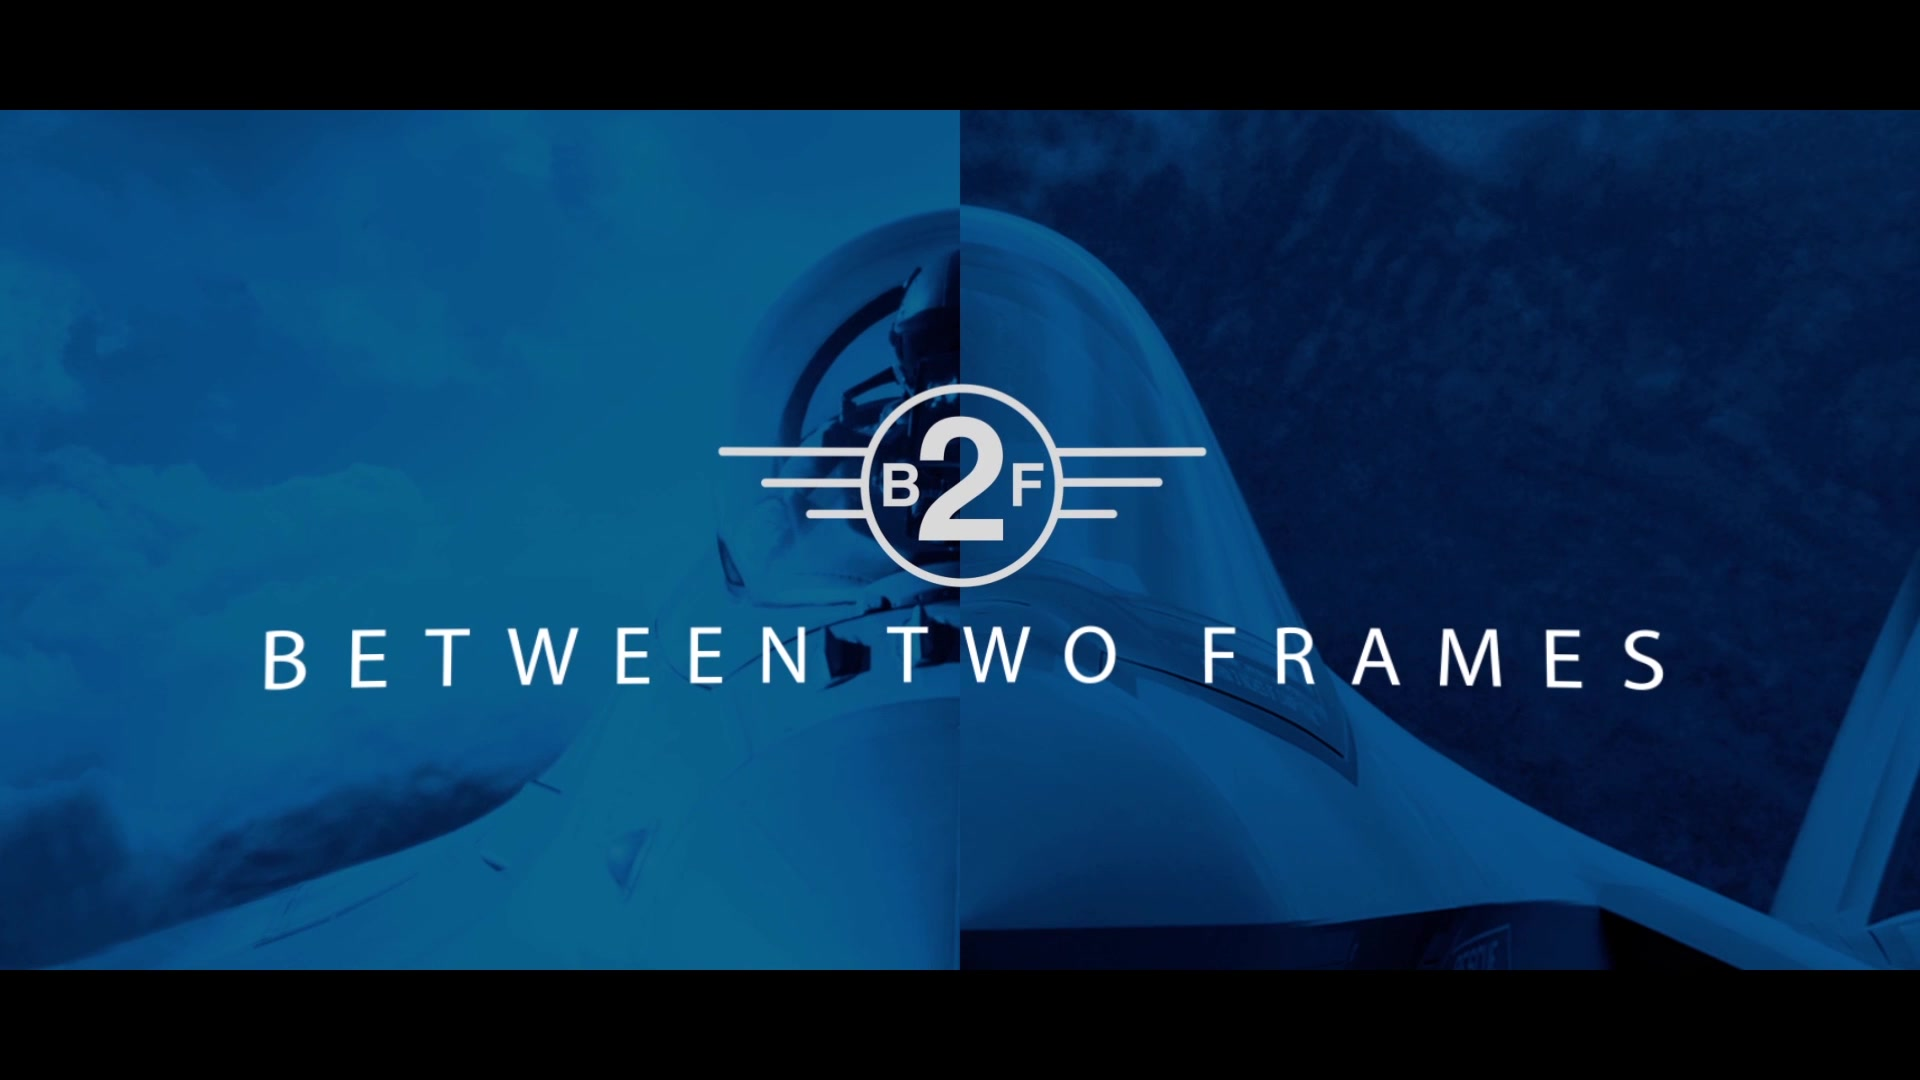 Episode 2 of Between two Frames, where we take an inside look into the transition from the F-16 to the F-35 airframe.